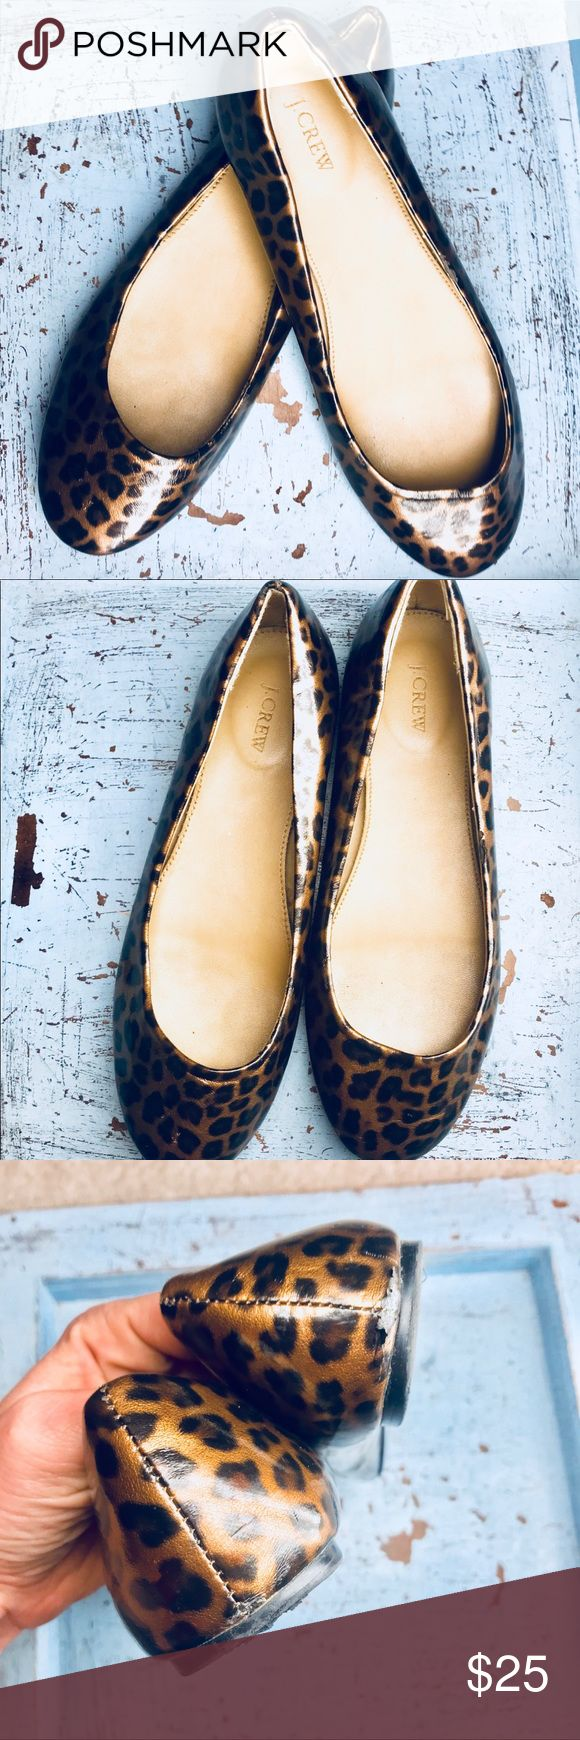 J Crew Leopard Ballet Flats Black Brown Neutral Very comfortable and cute. Good used condition. Minor scuffing and wear along the edges. Don't be shy, we love Offers! Thank you for looking.  Smoke free home. Please ask seller any questions before purchase. J. Crew Shoes Flats & Loafers